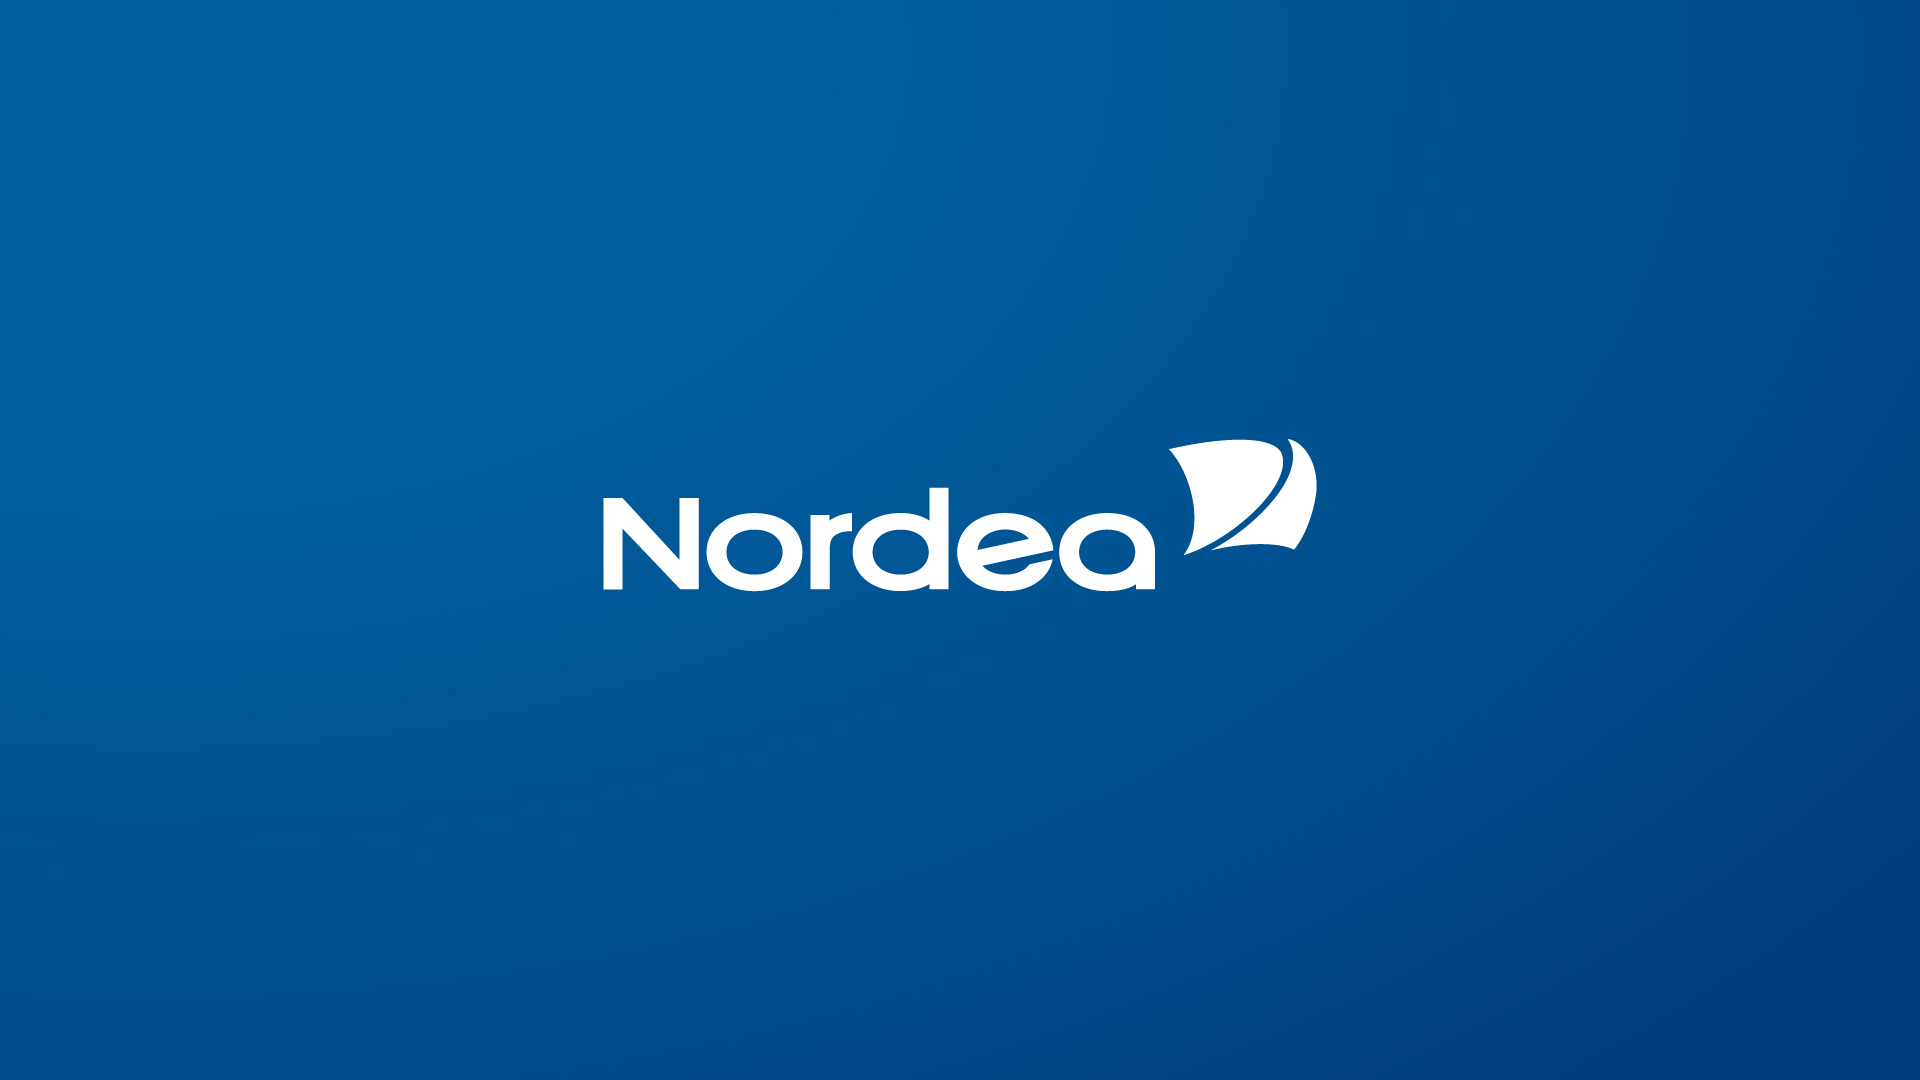 nordea-featured